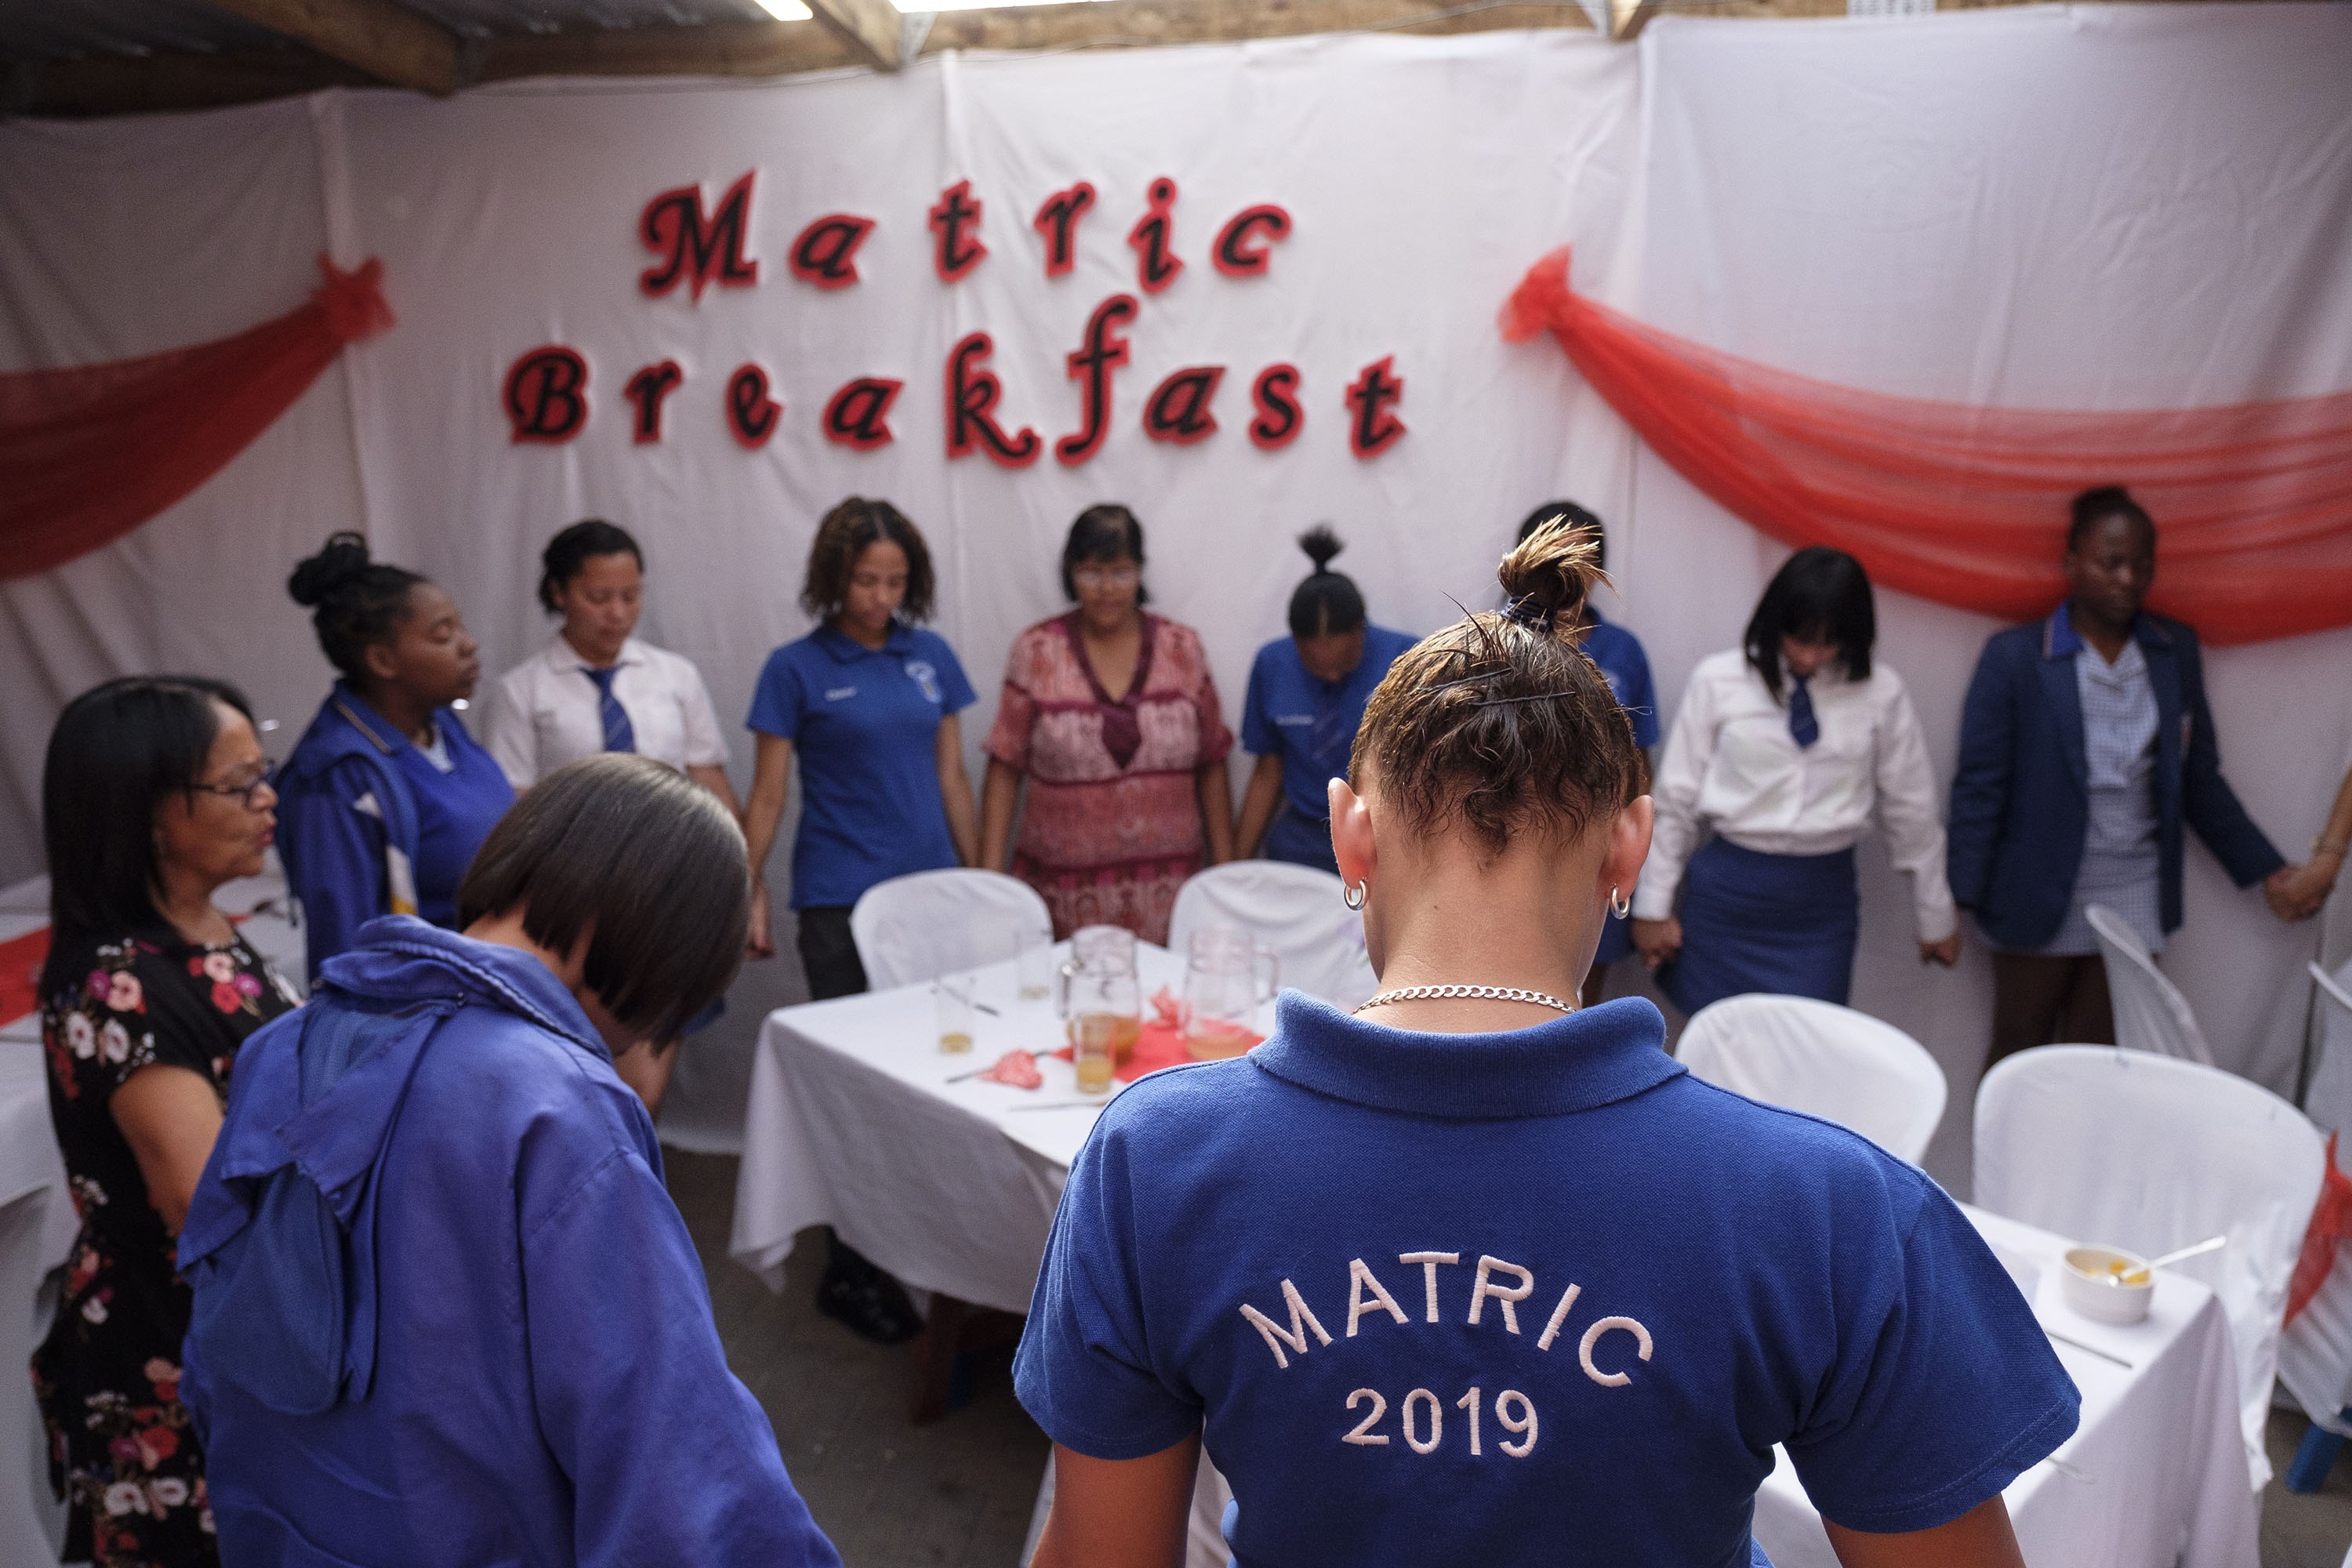 22 November 2019: The morning group prays together, each day after breakfast, before heading to school to write exams.